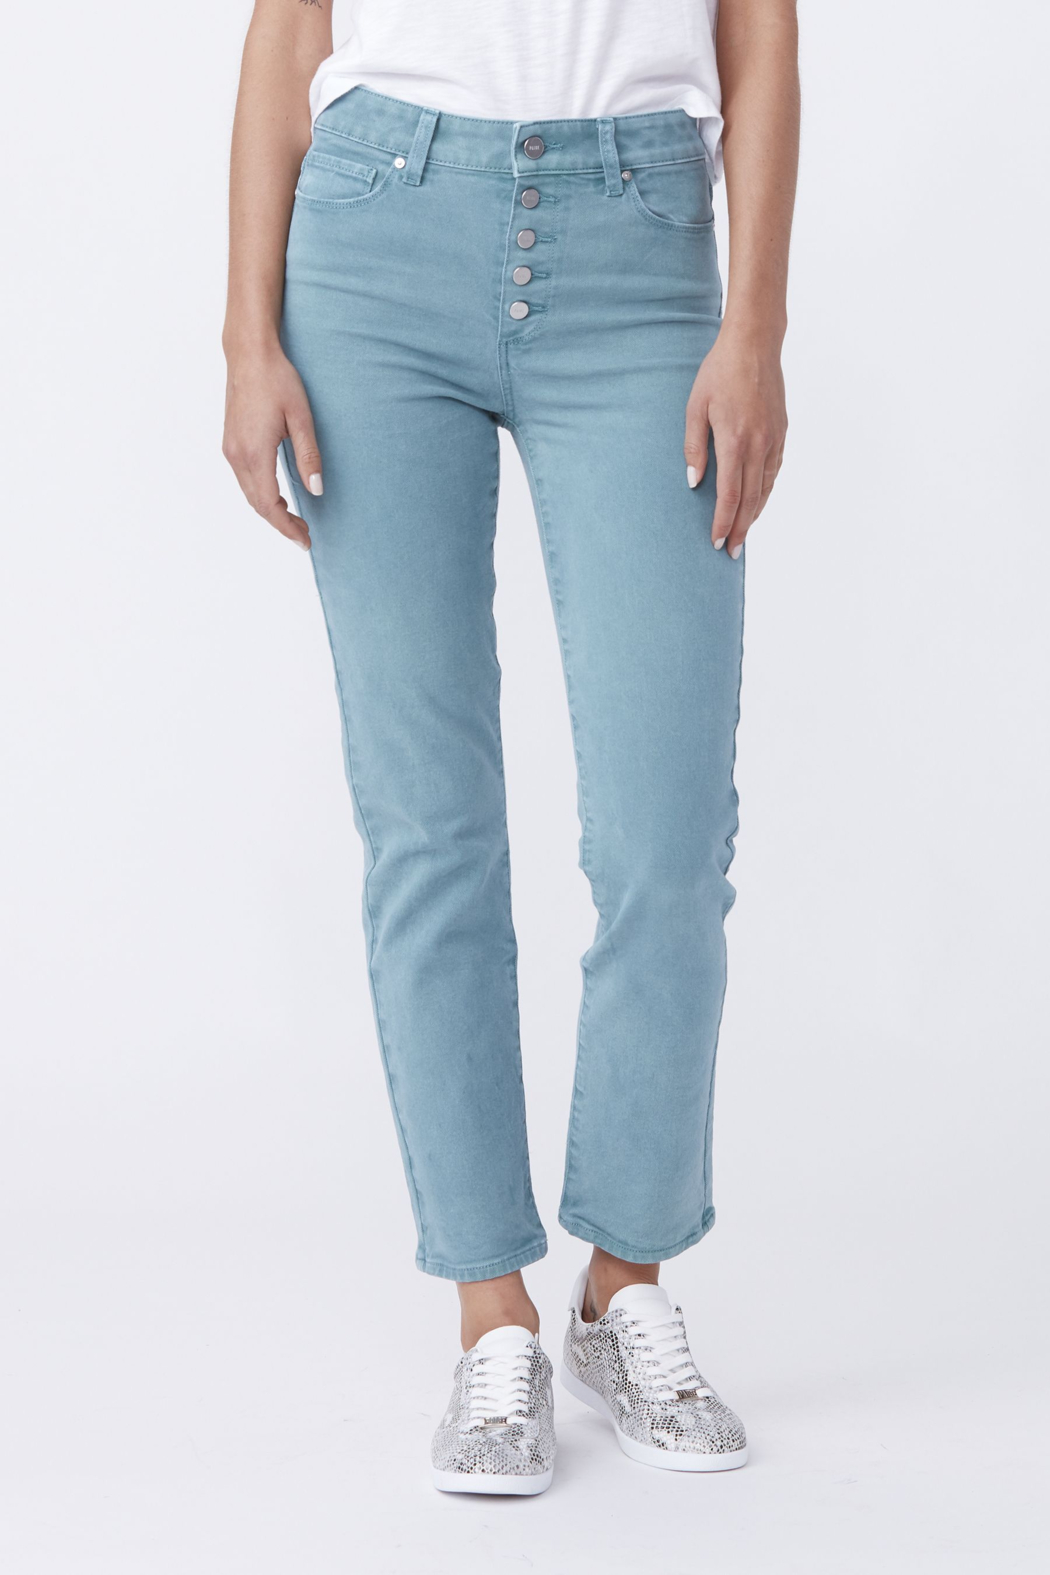 Paige Denim Cindy w/ Exposed Buttonfly - Main Image